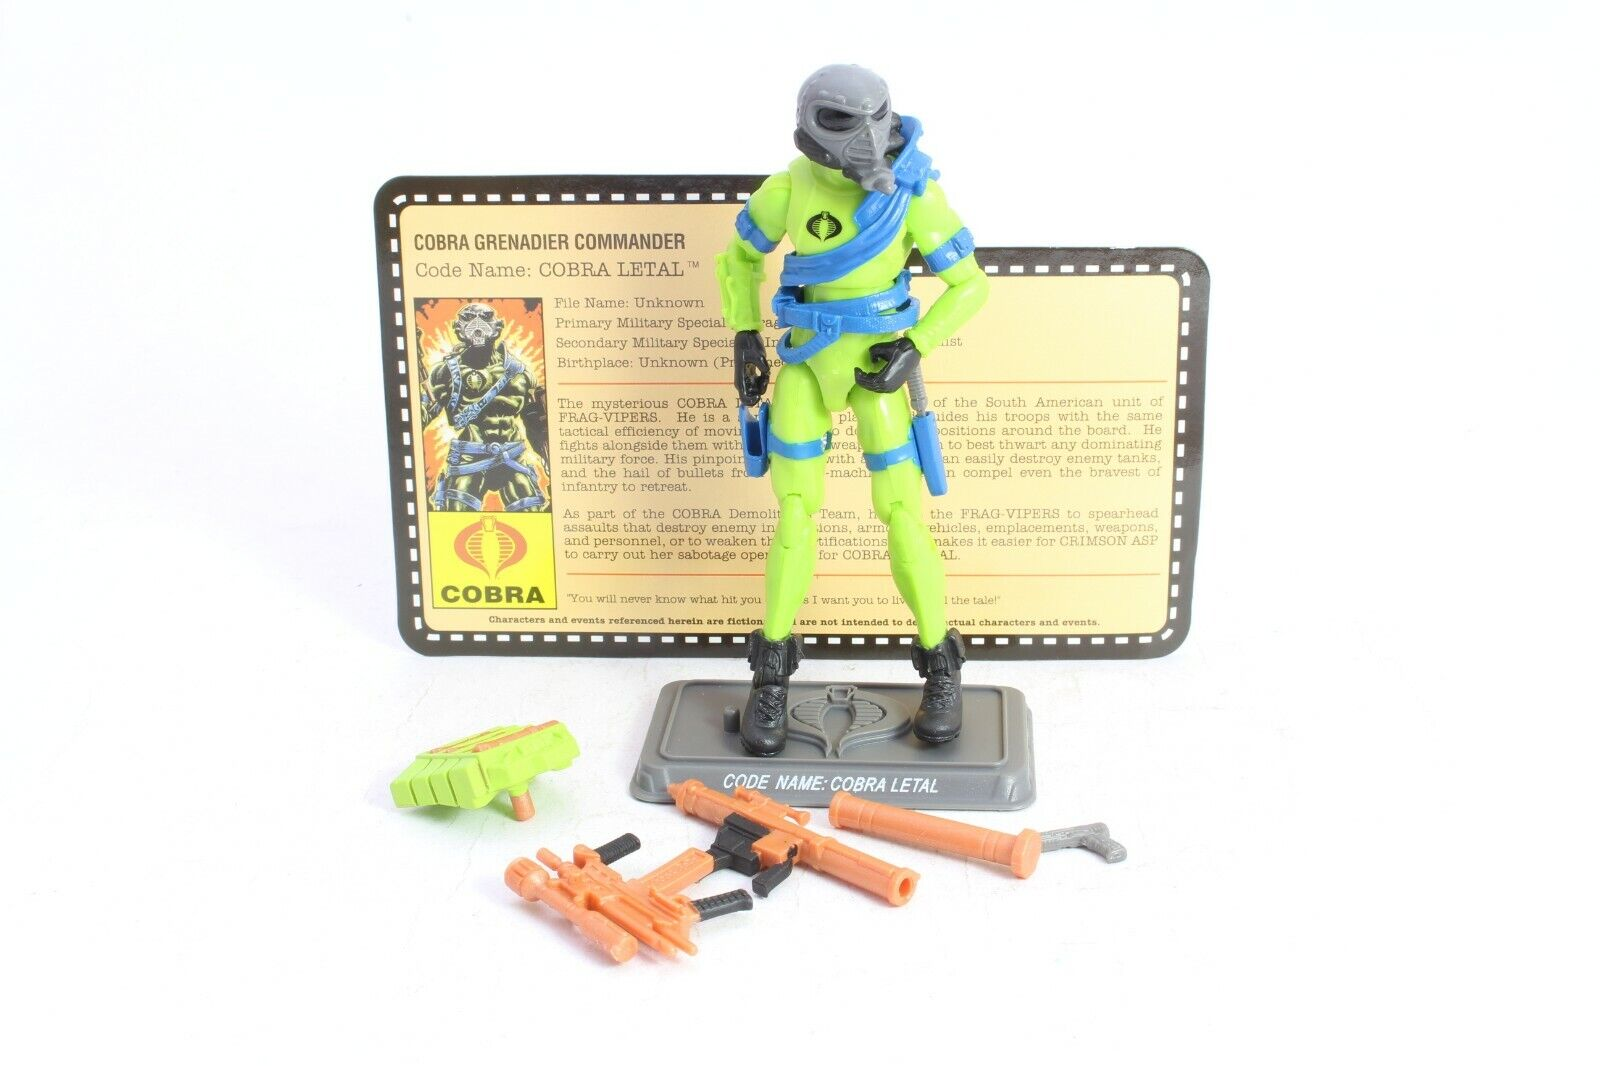 GI JOE COBRA LETAL 25th Anniversario Convenzione esclusivo Night Force